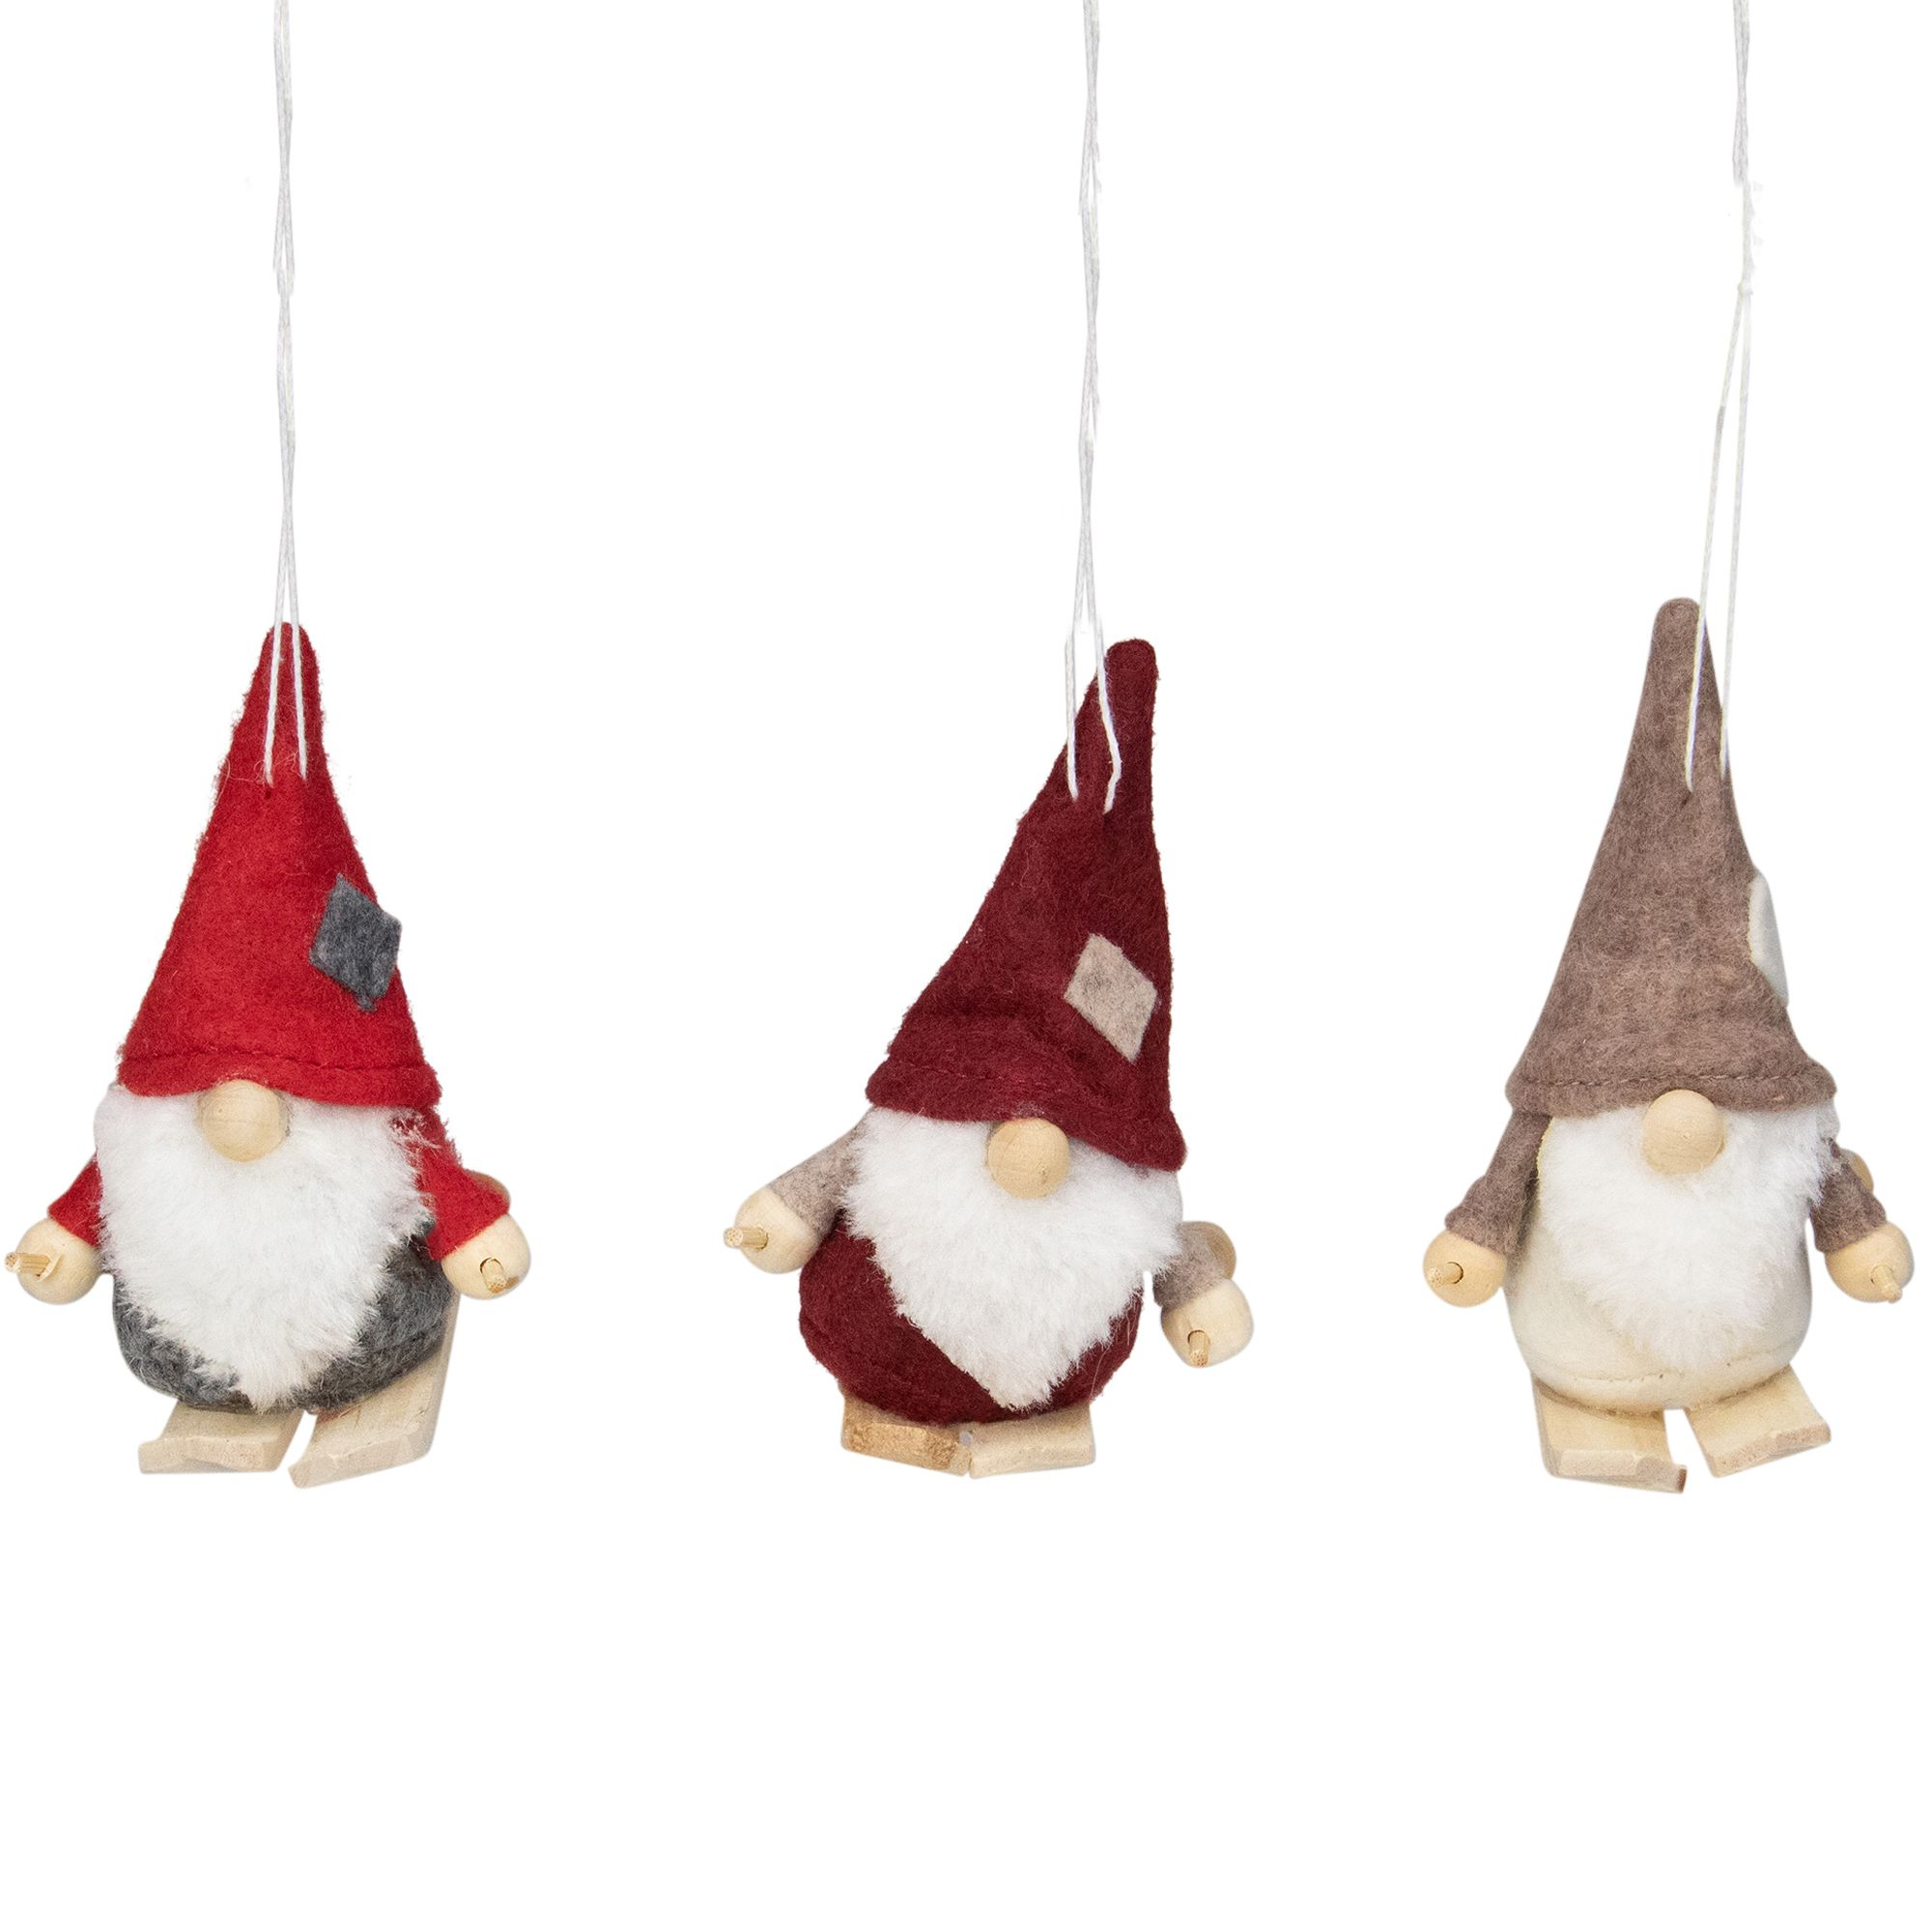 Set Of 3 Red And Gray Skiing Gnome Christmas Ornaments 4 Handmade Christmas Decorations Diy Felt Christmas Tree Christmas Ornaments